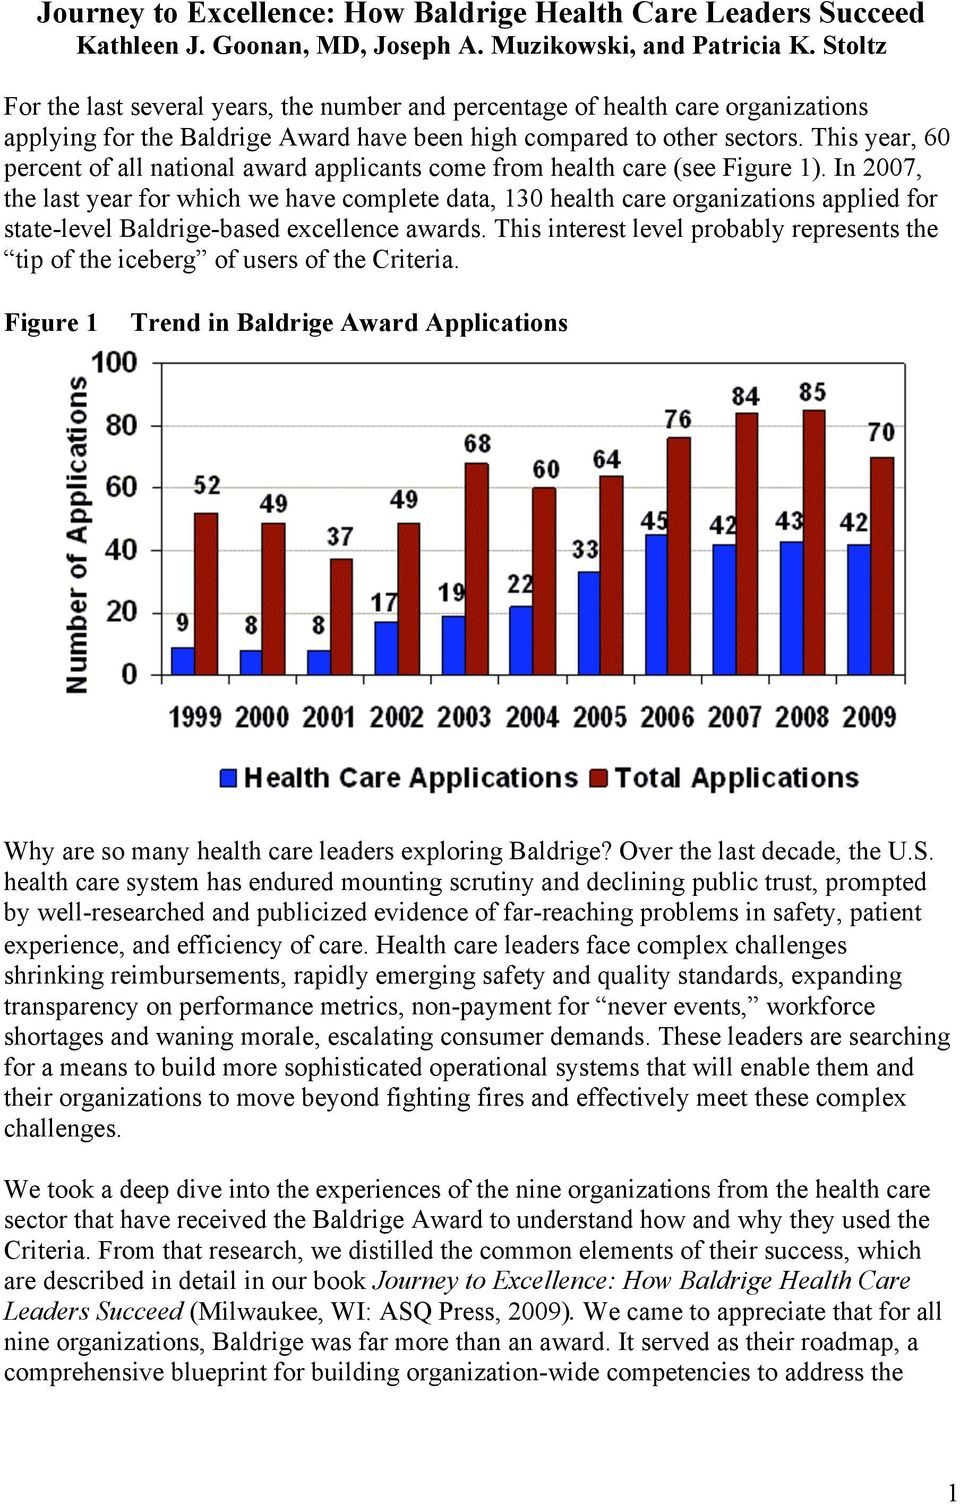 This year, 60 percent of all national award applicants come from health care (see Figure 1).